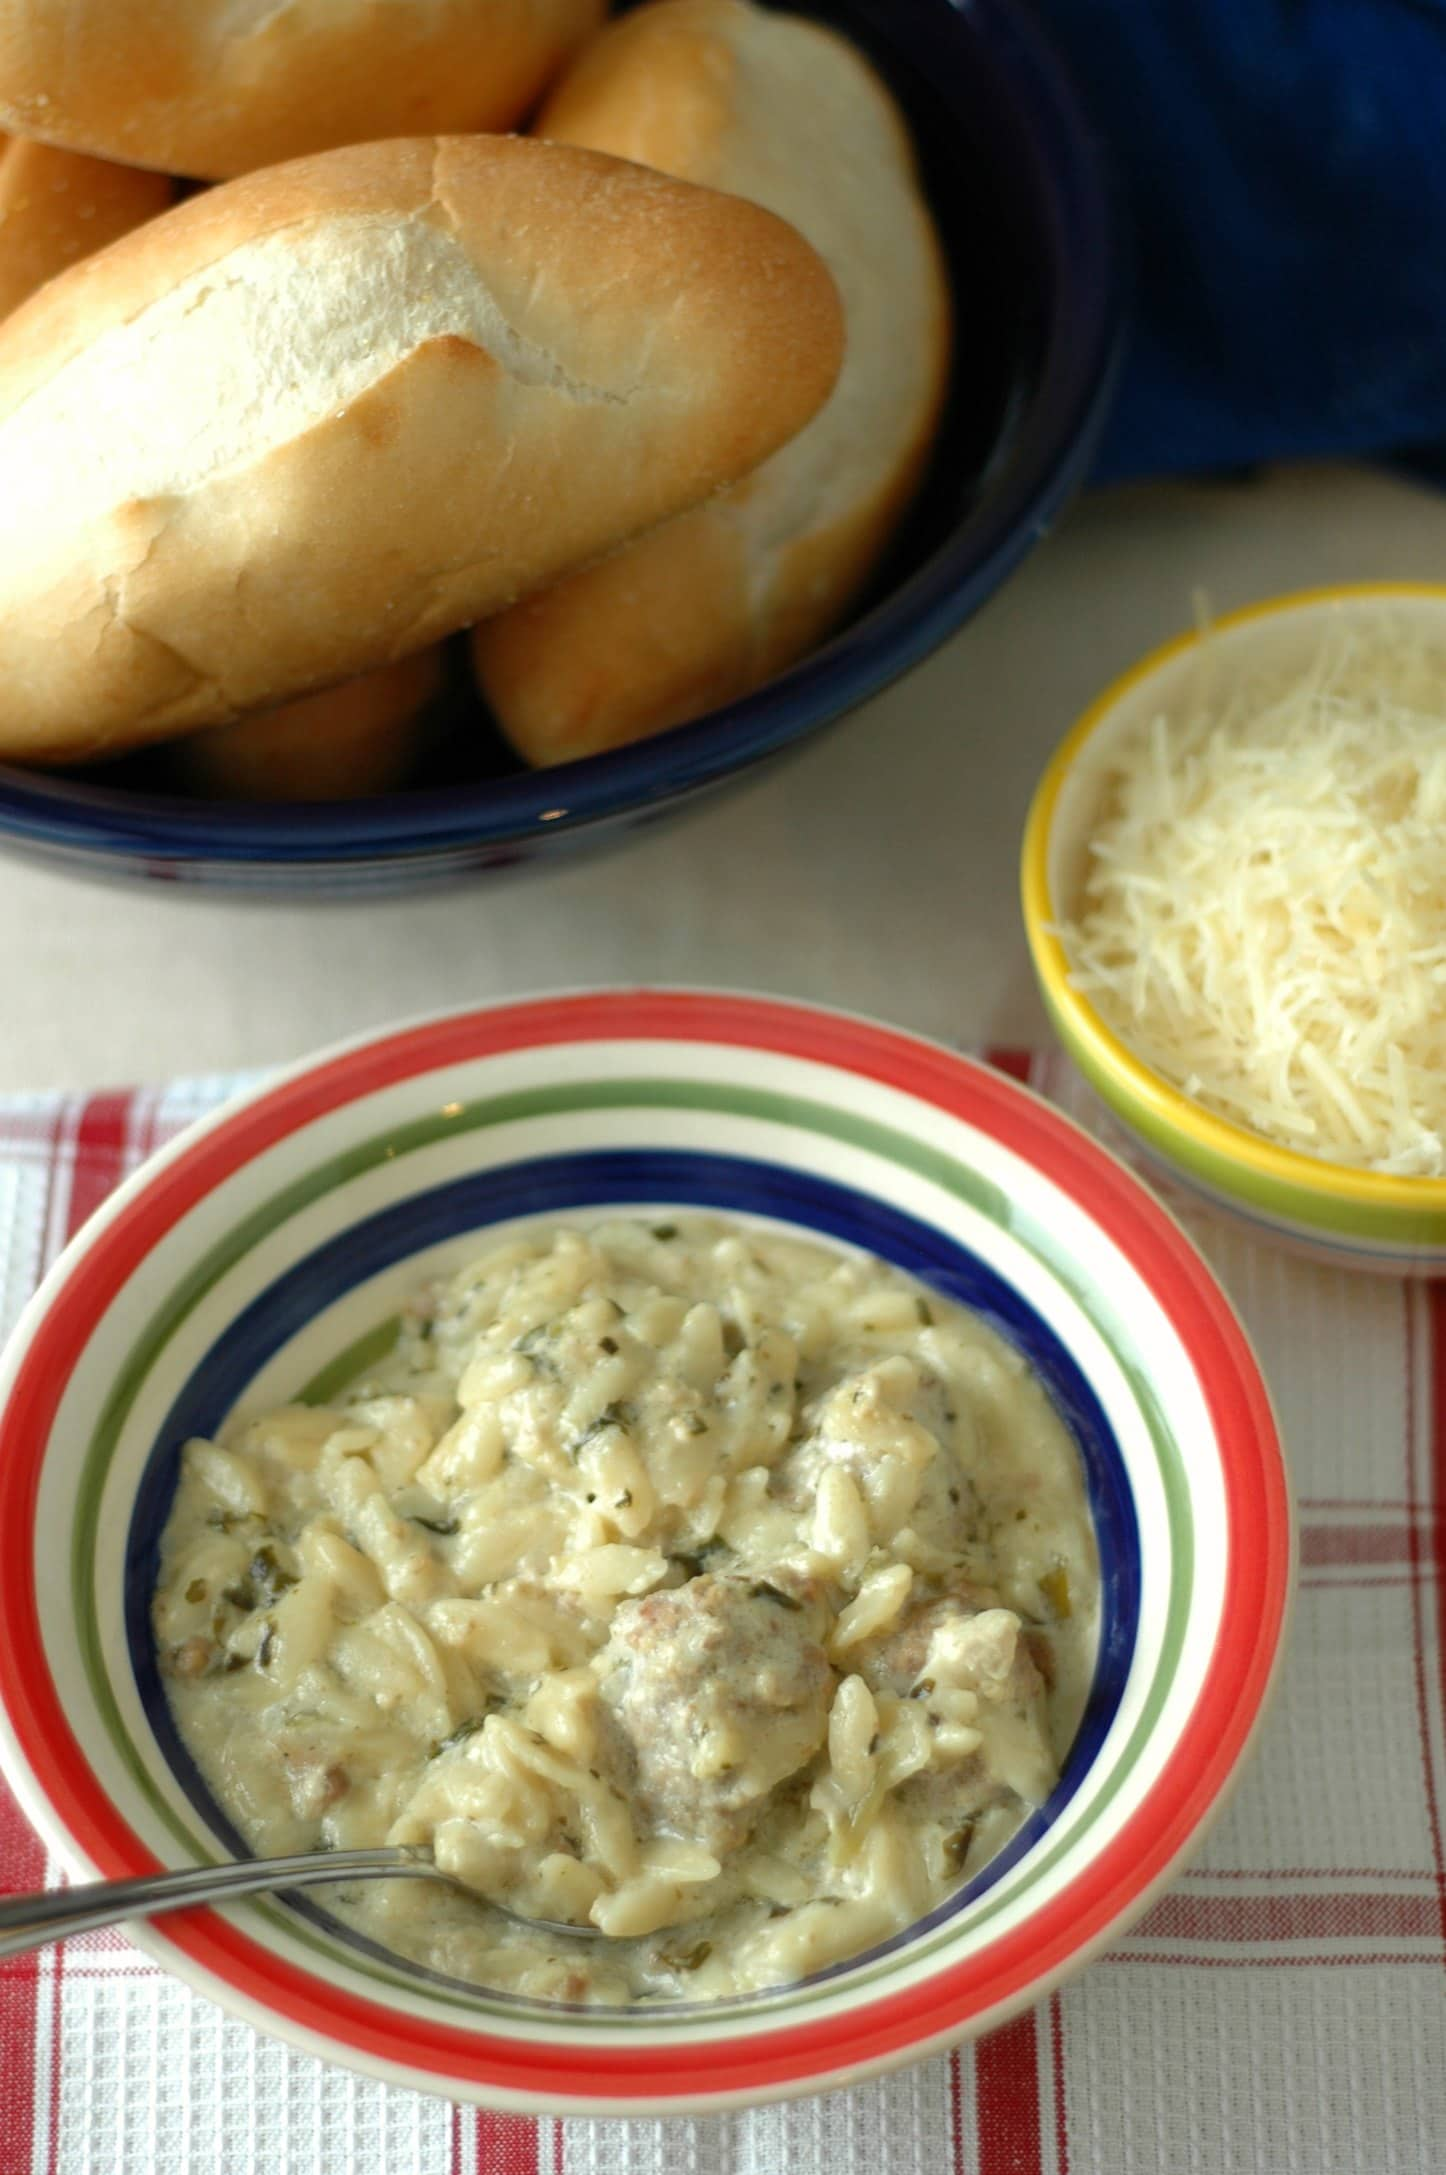 White bowl with colored rim of Creamy Meatball and Orzo Soup, baked roll and shredded cheese